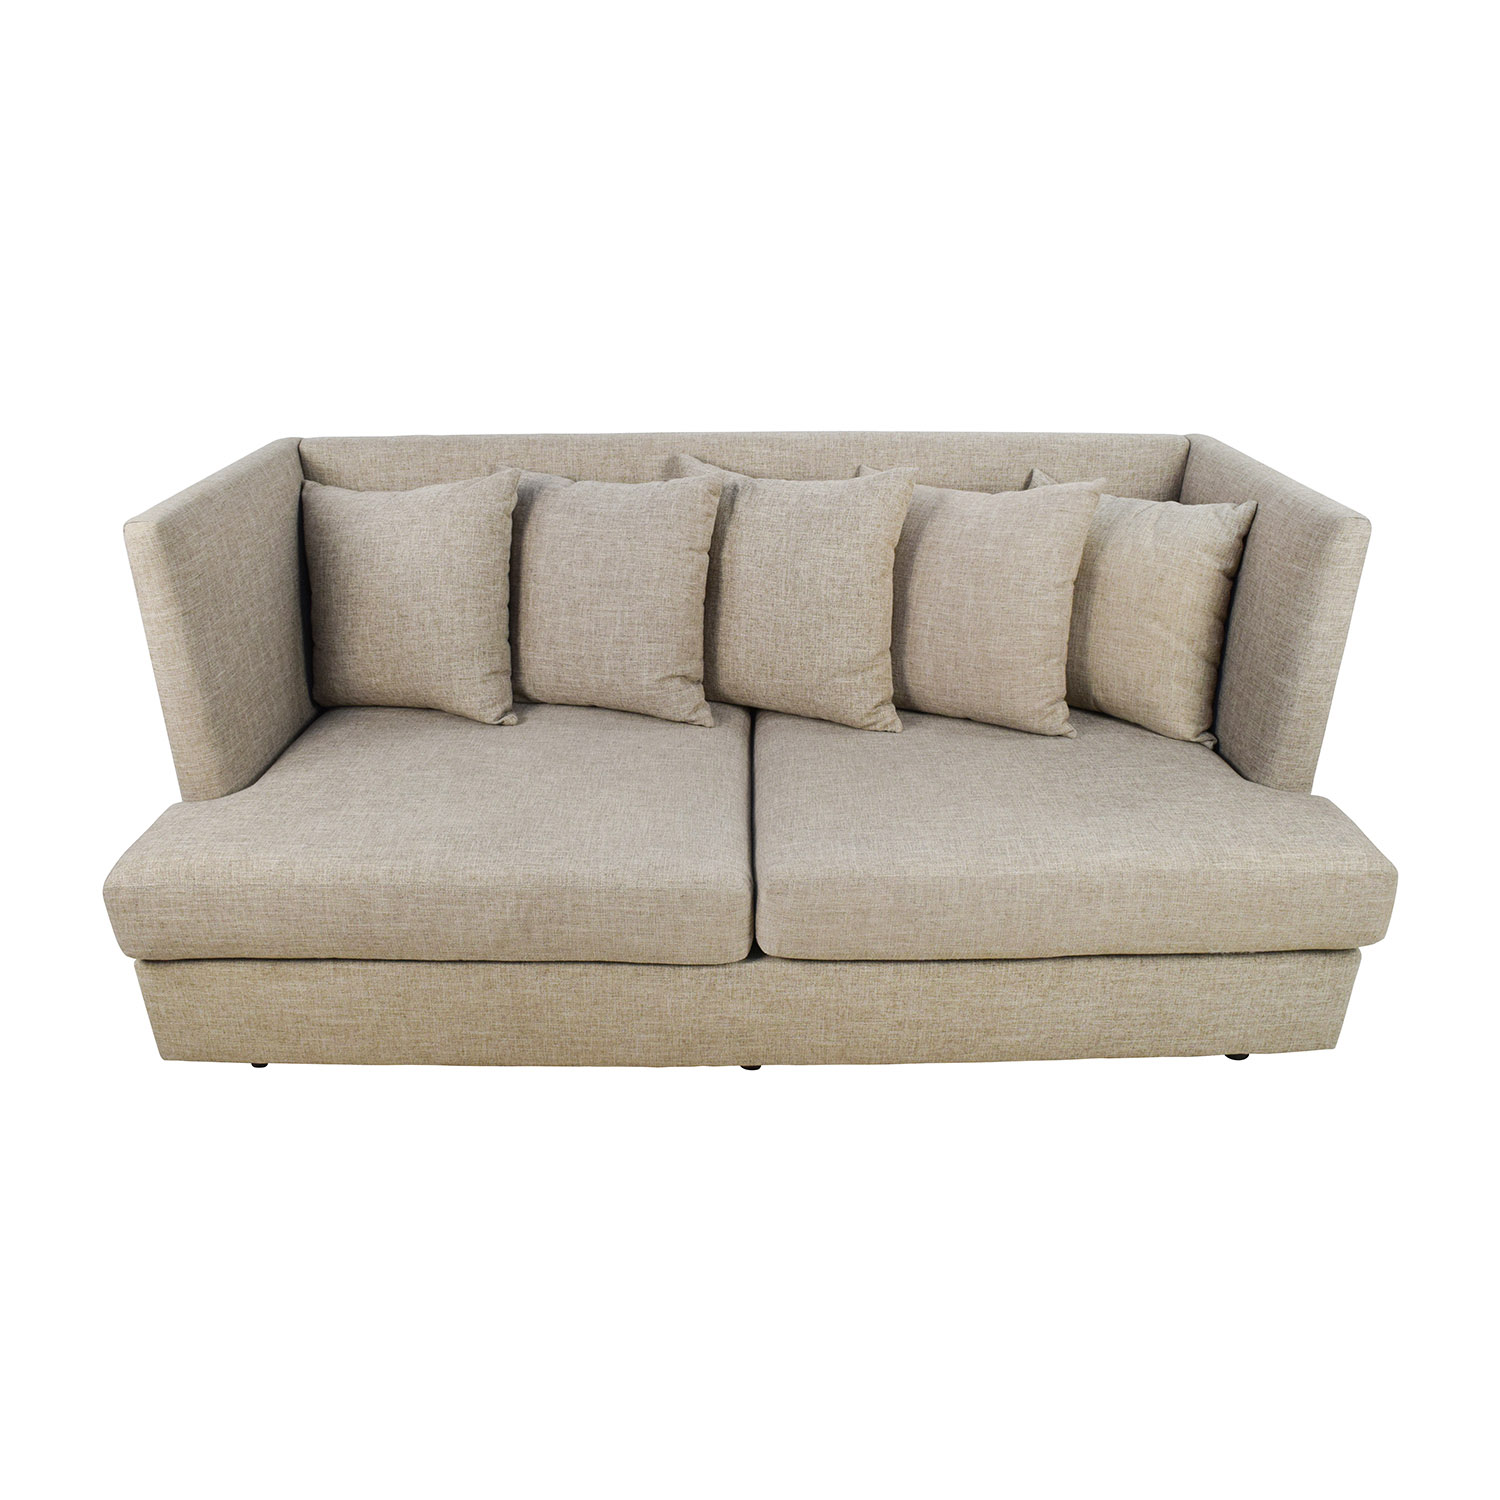 34% OFF Crate and Barrel Crate & Barrel Shelter Beige Couch Sofas